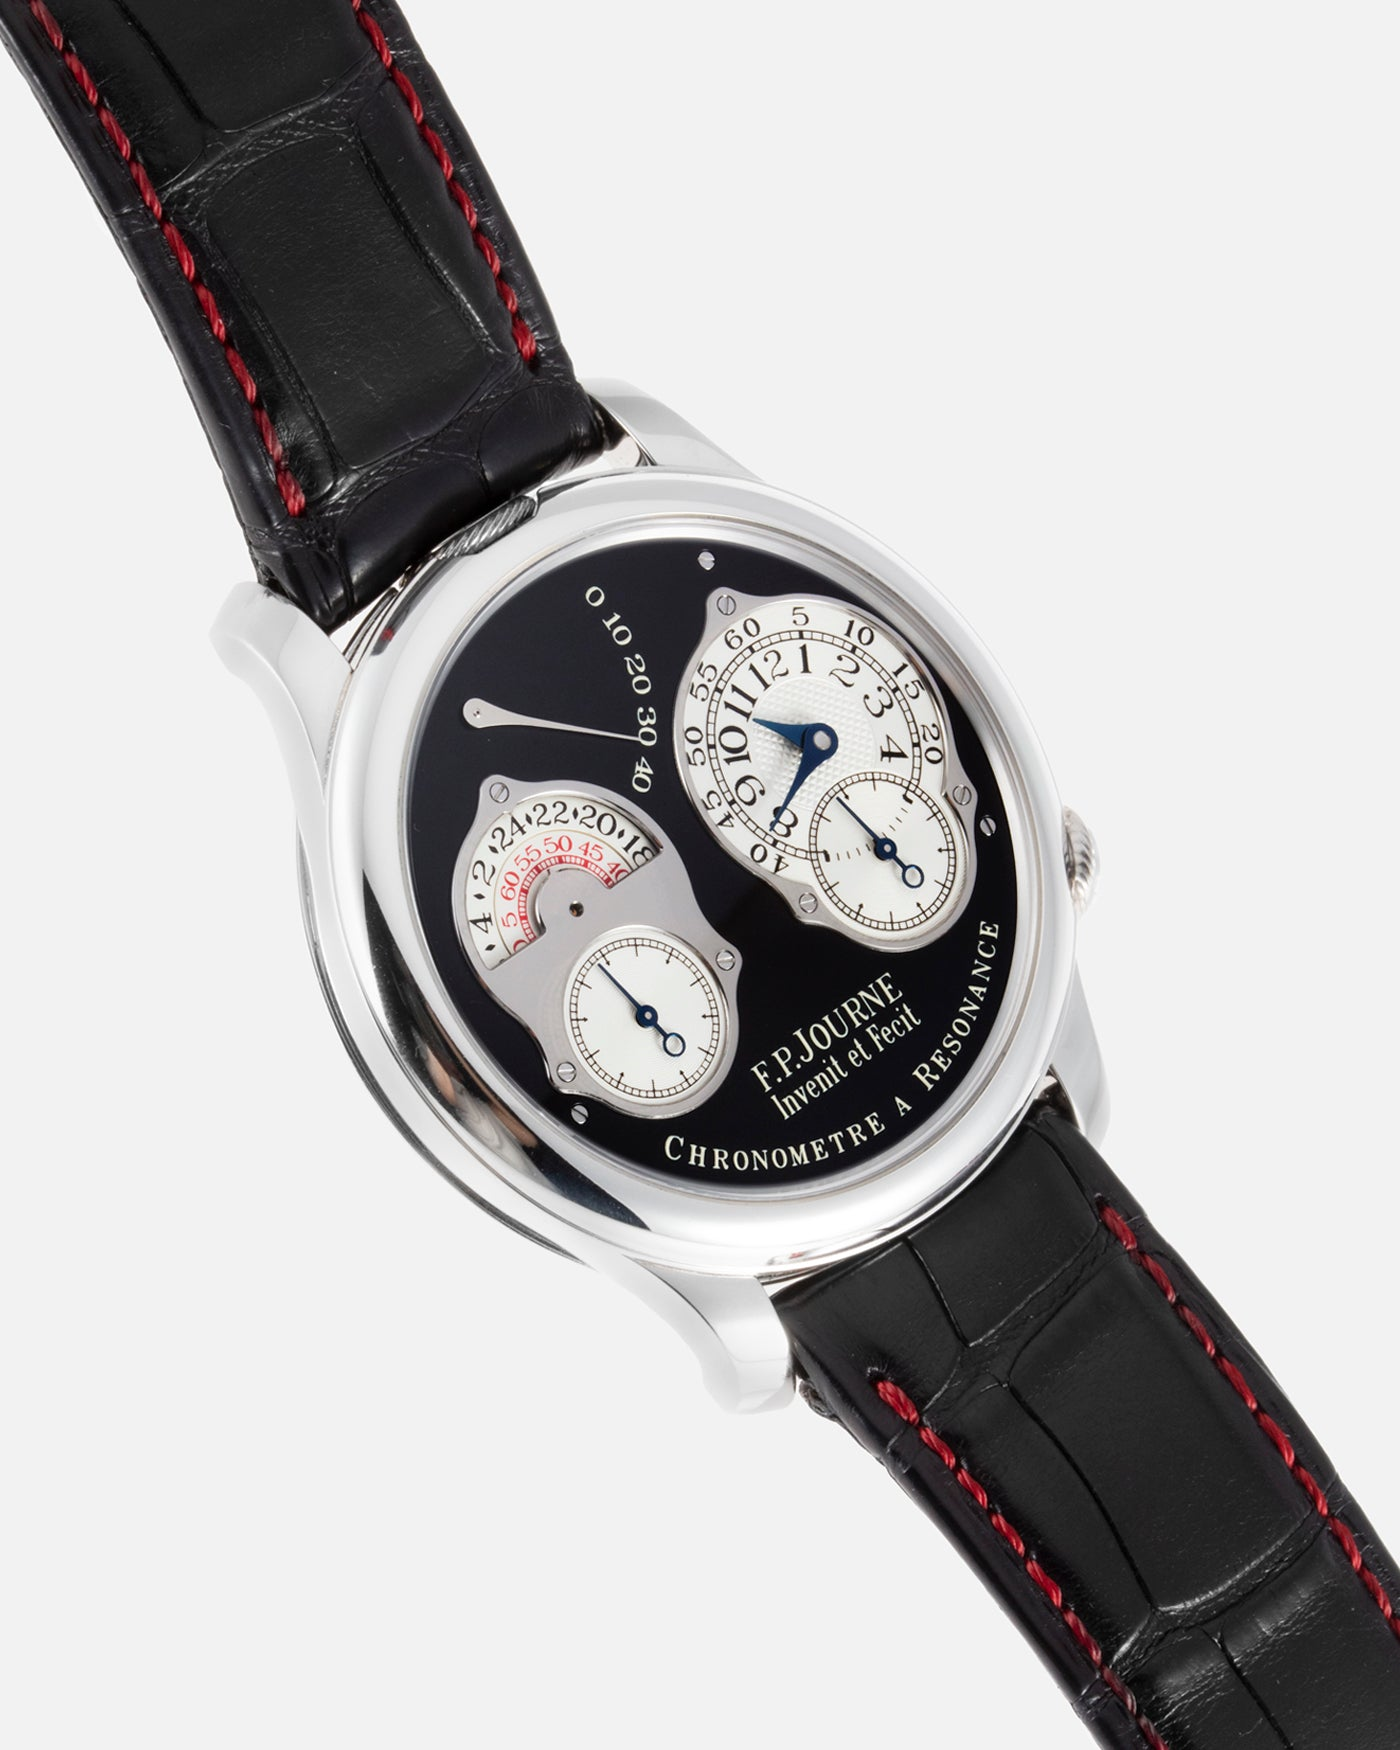 F.P. Journe Chronometre A Resonance Black Label